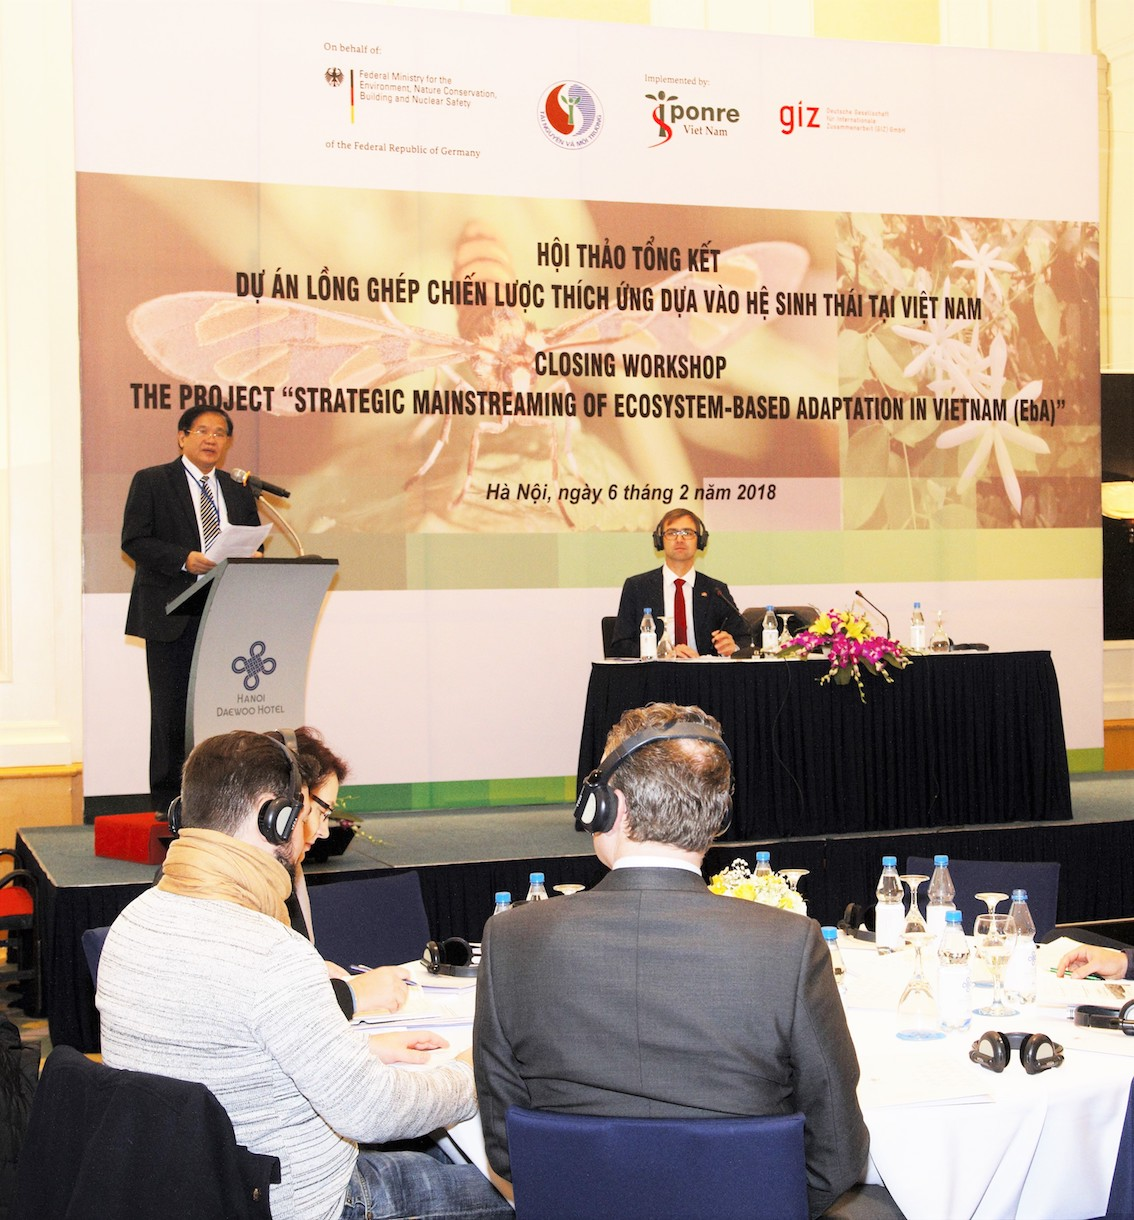 ECOSYSTEM-BASED ADAPTATION PROJECT SUPPORTS COMPREHENSIVE COOPERATION FOR VIETNAM'S CLIMATE CHANGE RESPONSE